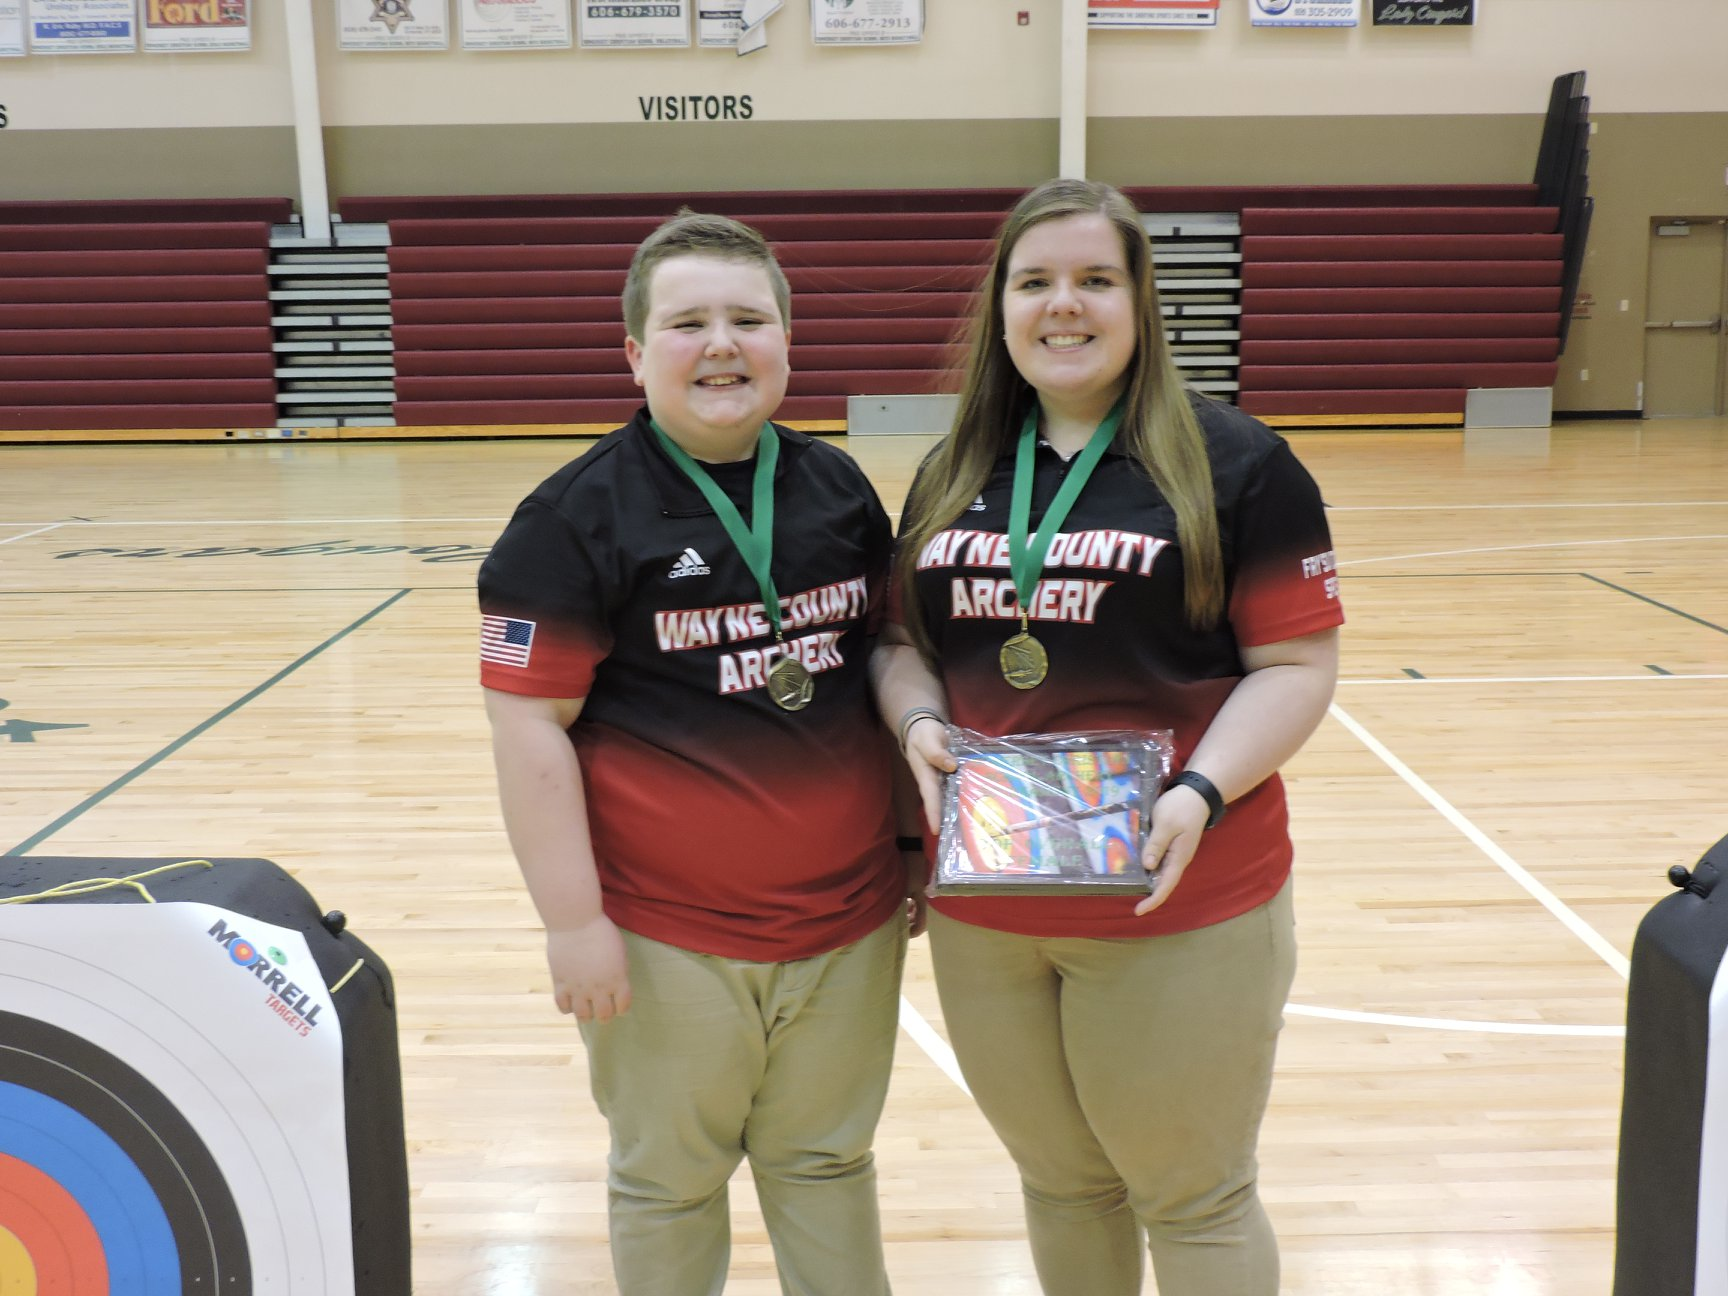 Brody Shelton-1st place Individual Elementary Male and Ragan Shelton-1st place High School Female and top overall female shooter of the tournament